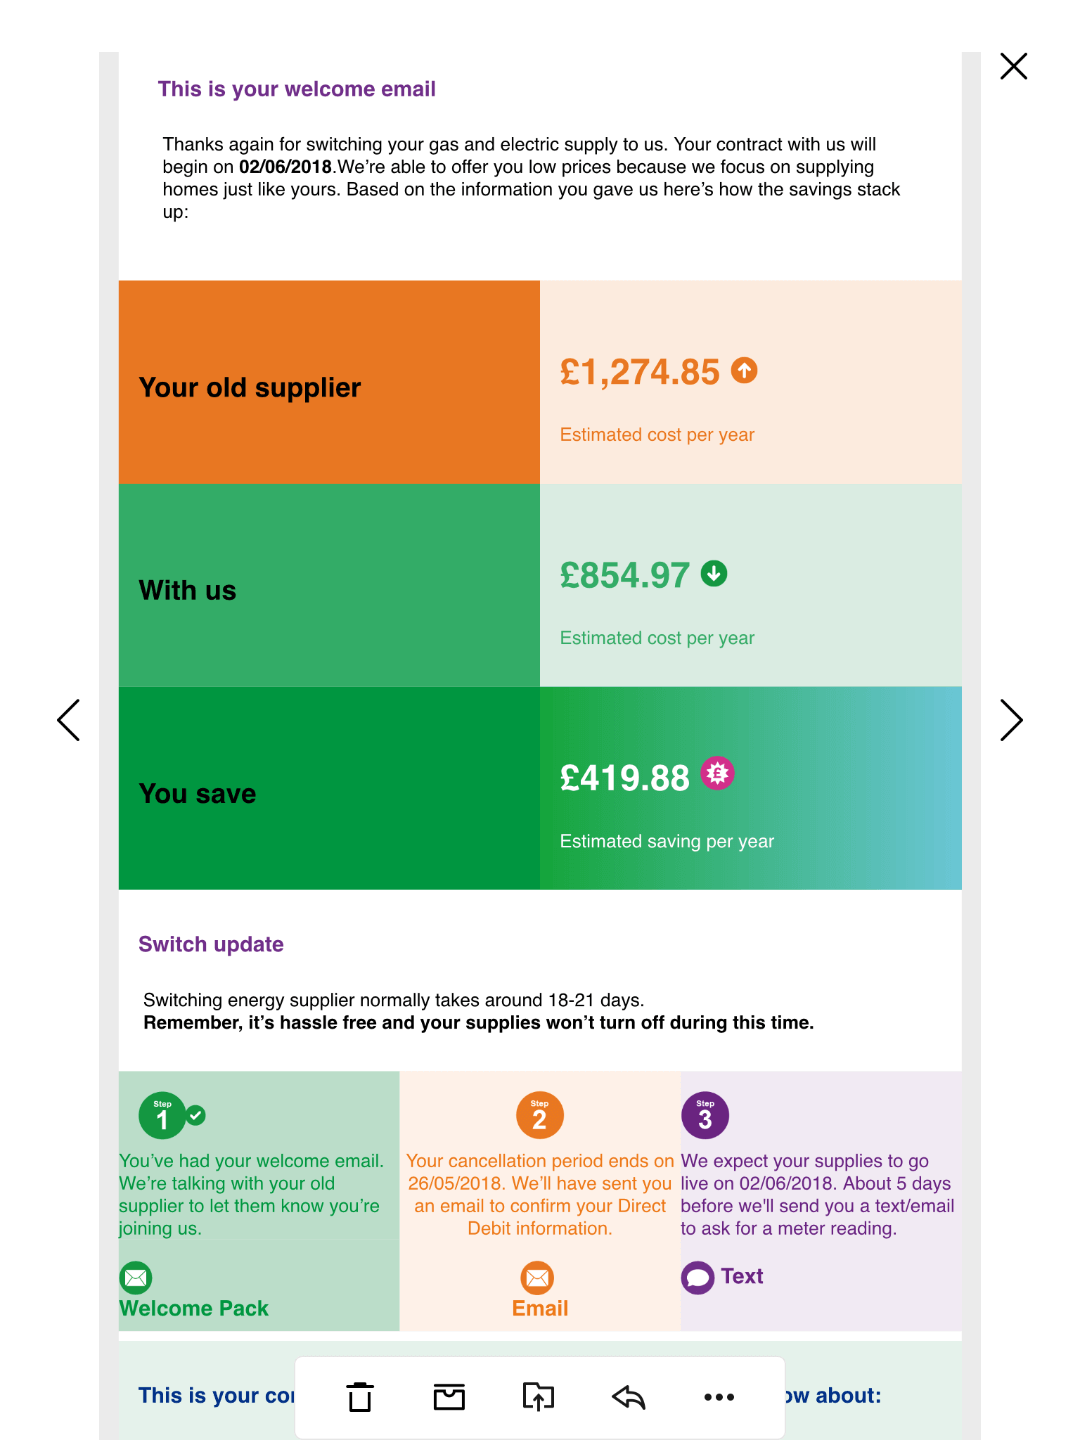 I'm grinning from ear to ear about my savings in one week. It really isn't hard once you know a few tricks and adapt your lifestyle to one where you look for ways to save money. Do not pay more for bills than you have to. Read on to see what else we did this week to save over £1000.